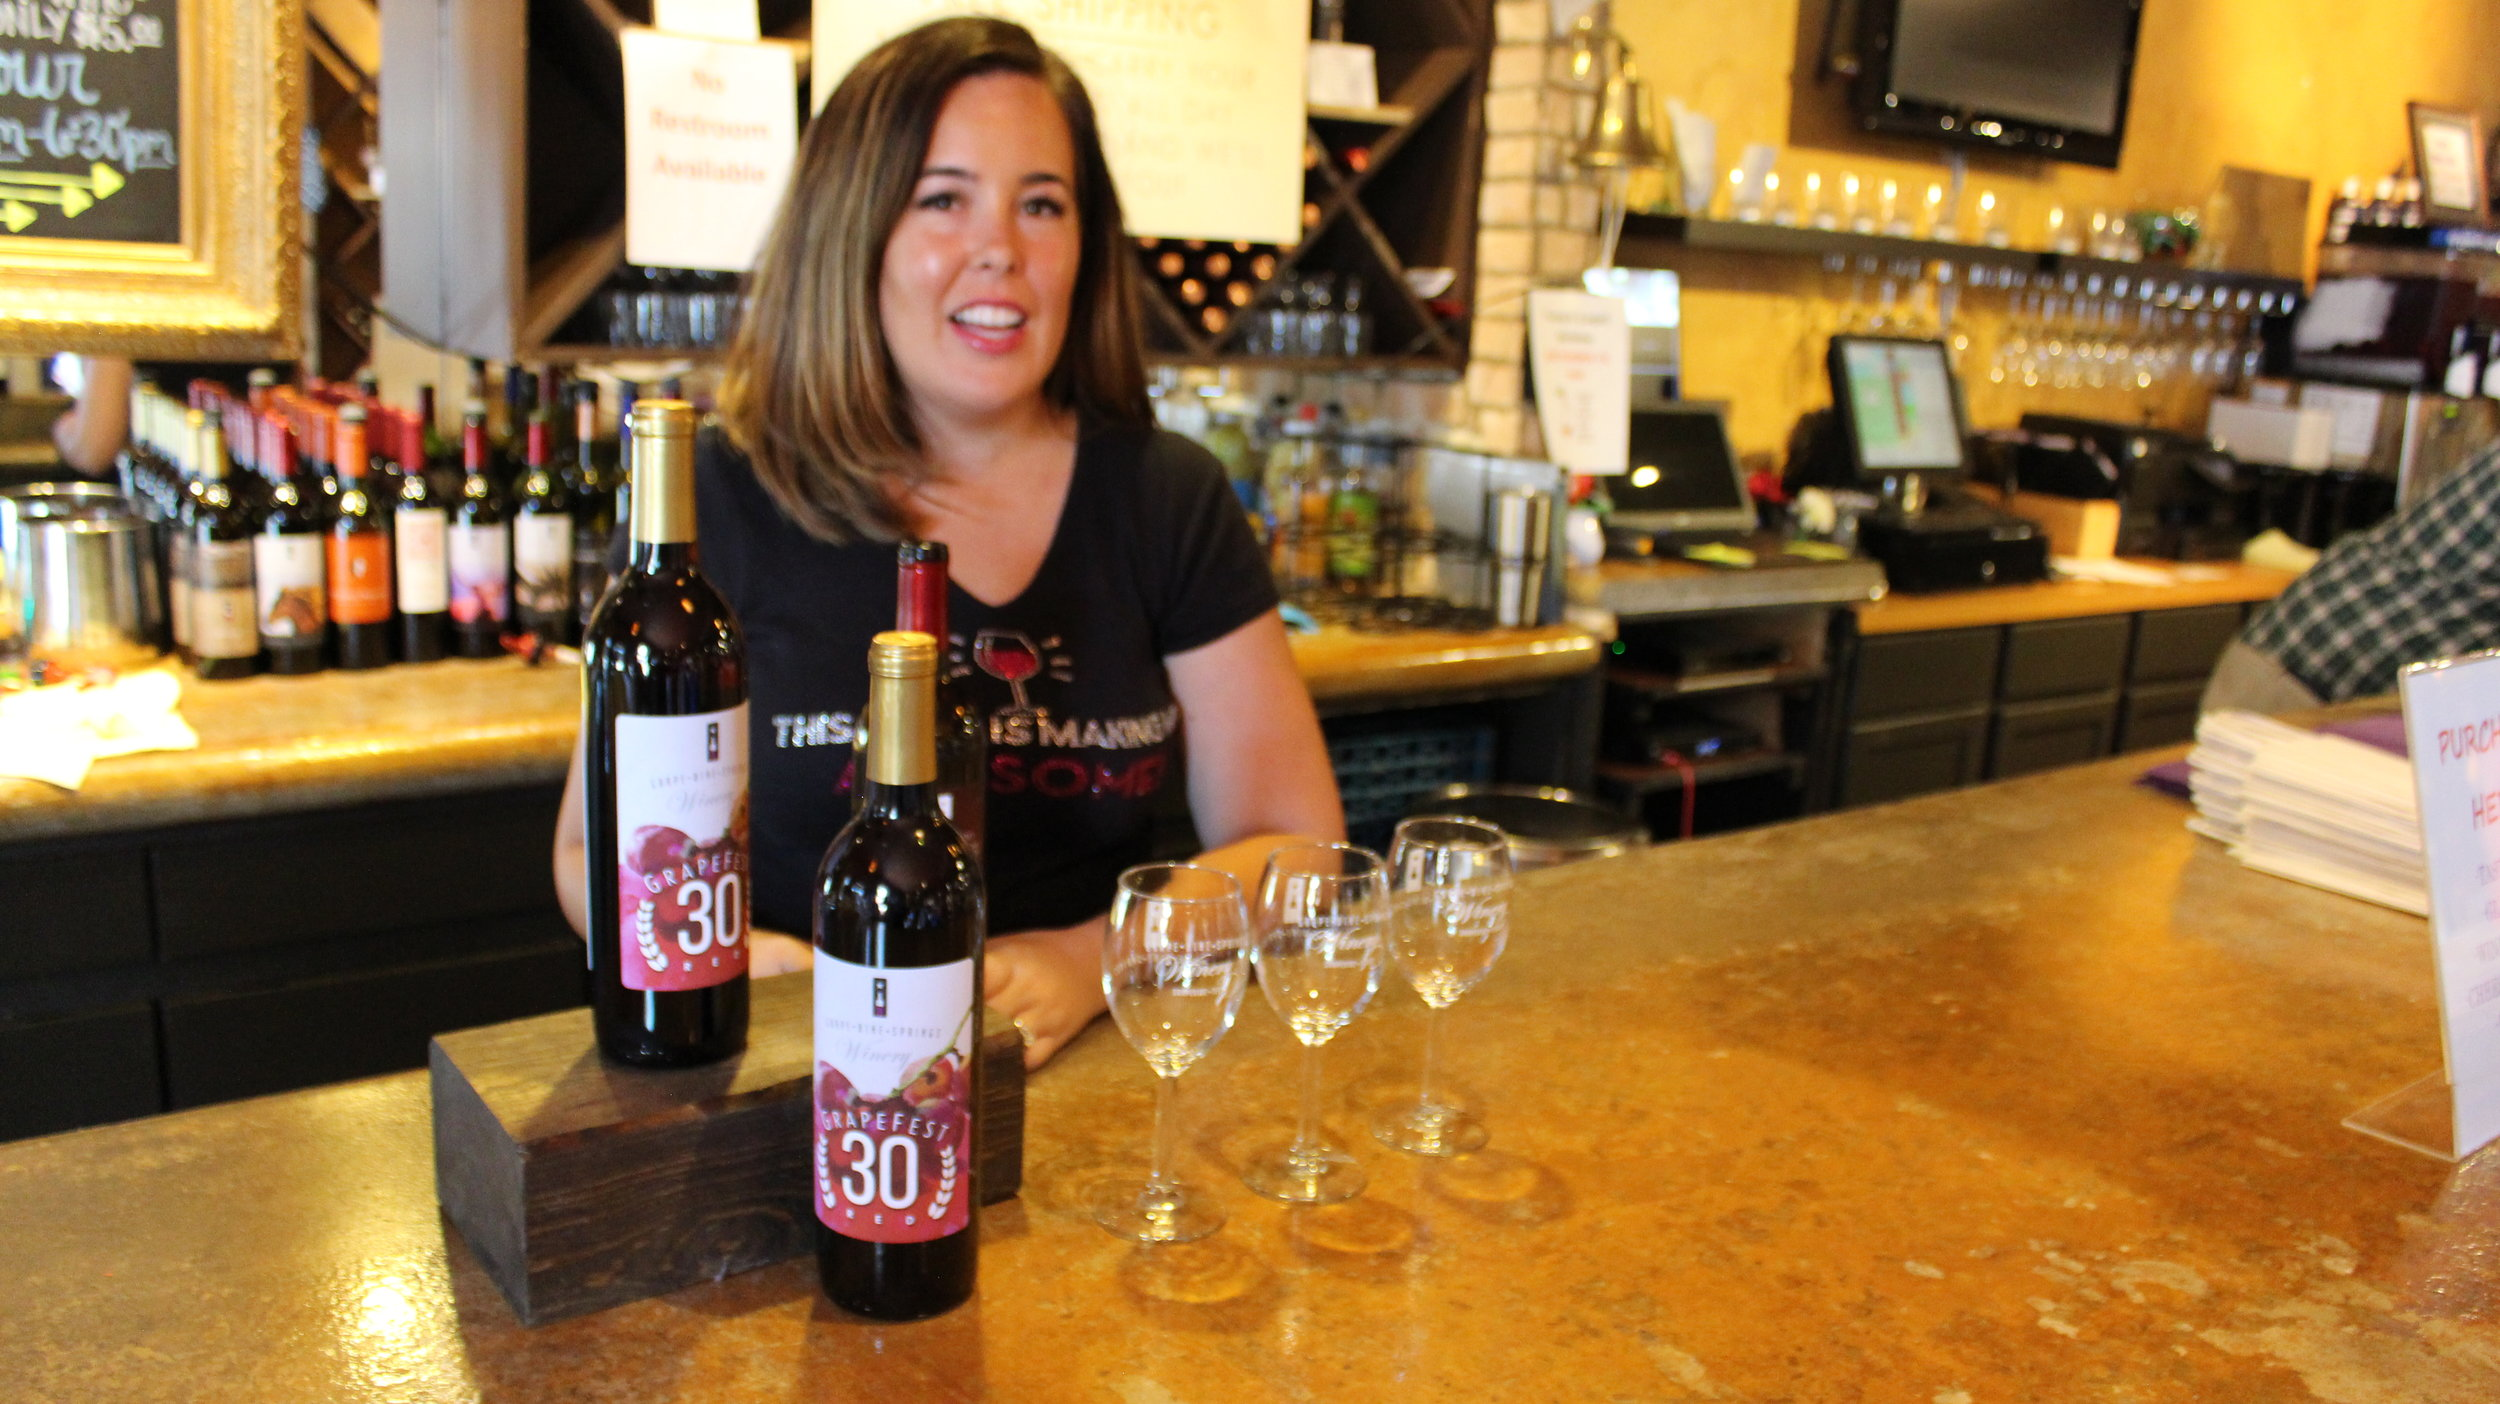 Lady_with_wine_winery_developers_business